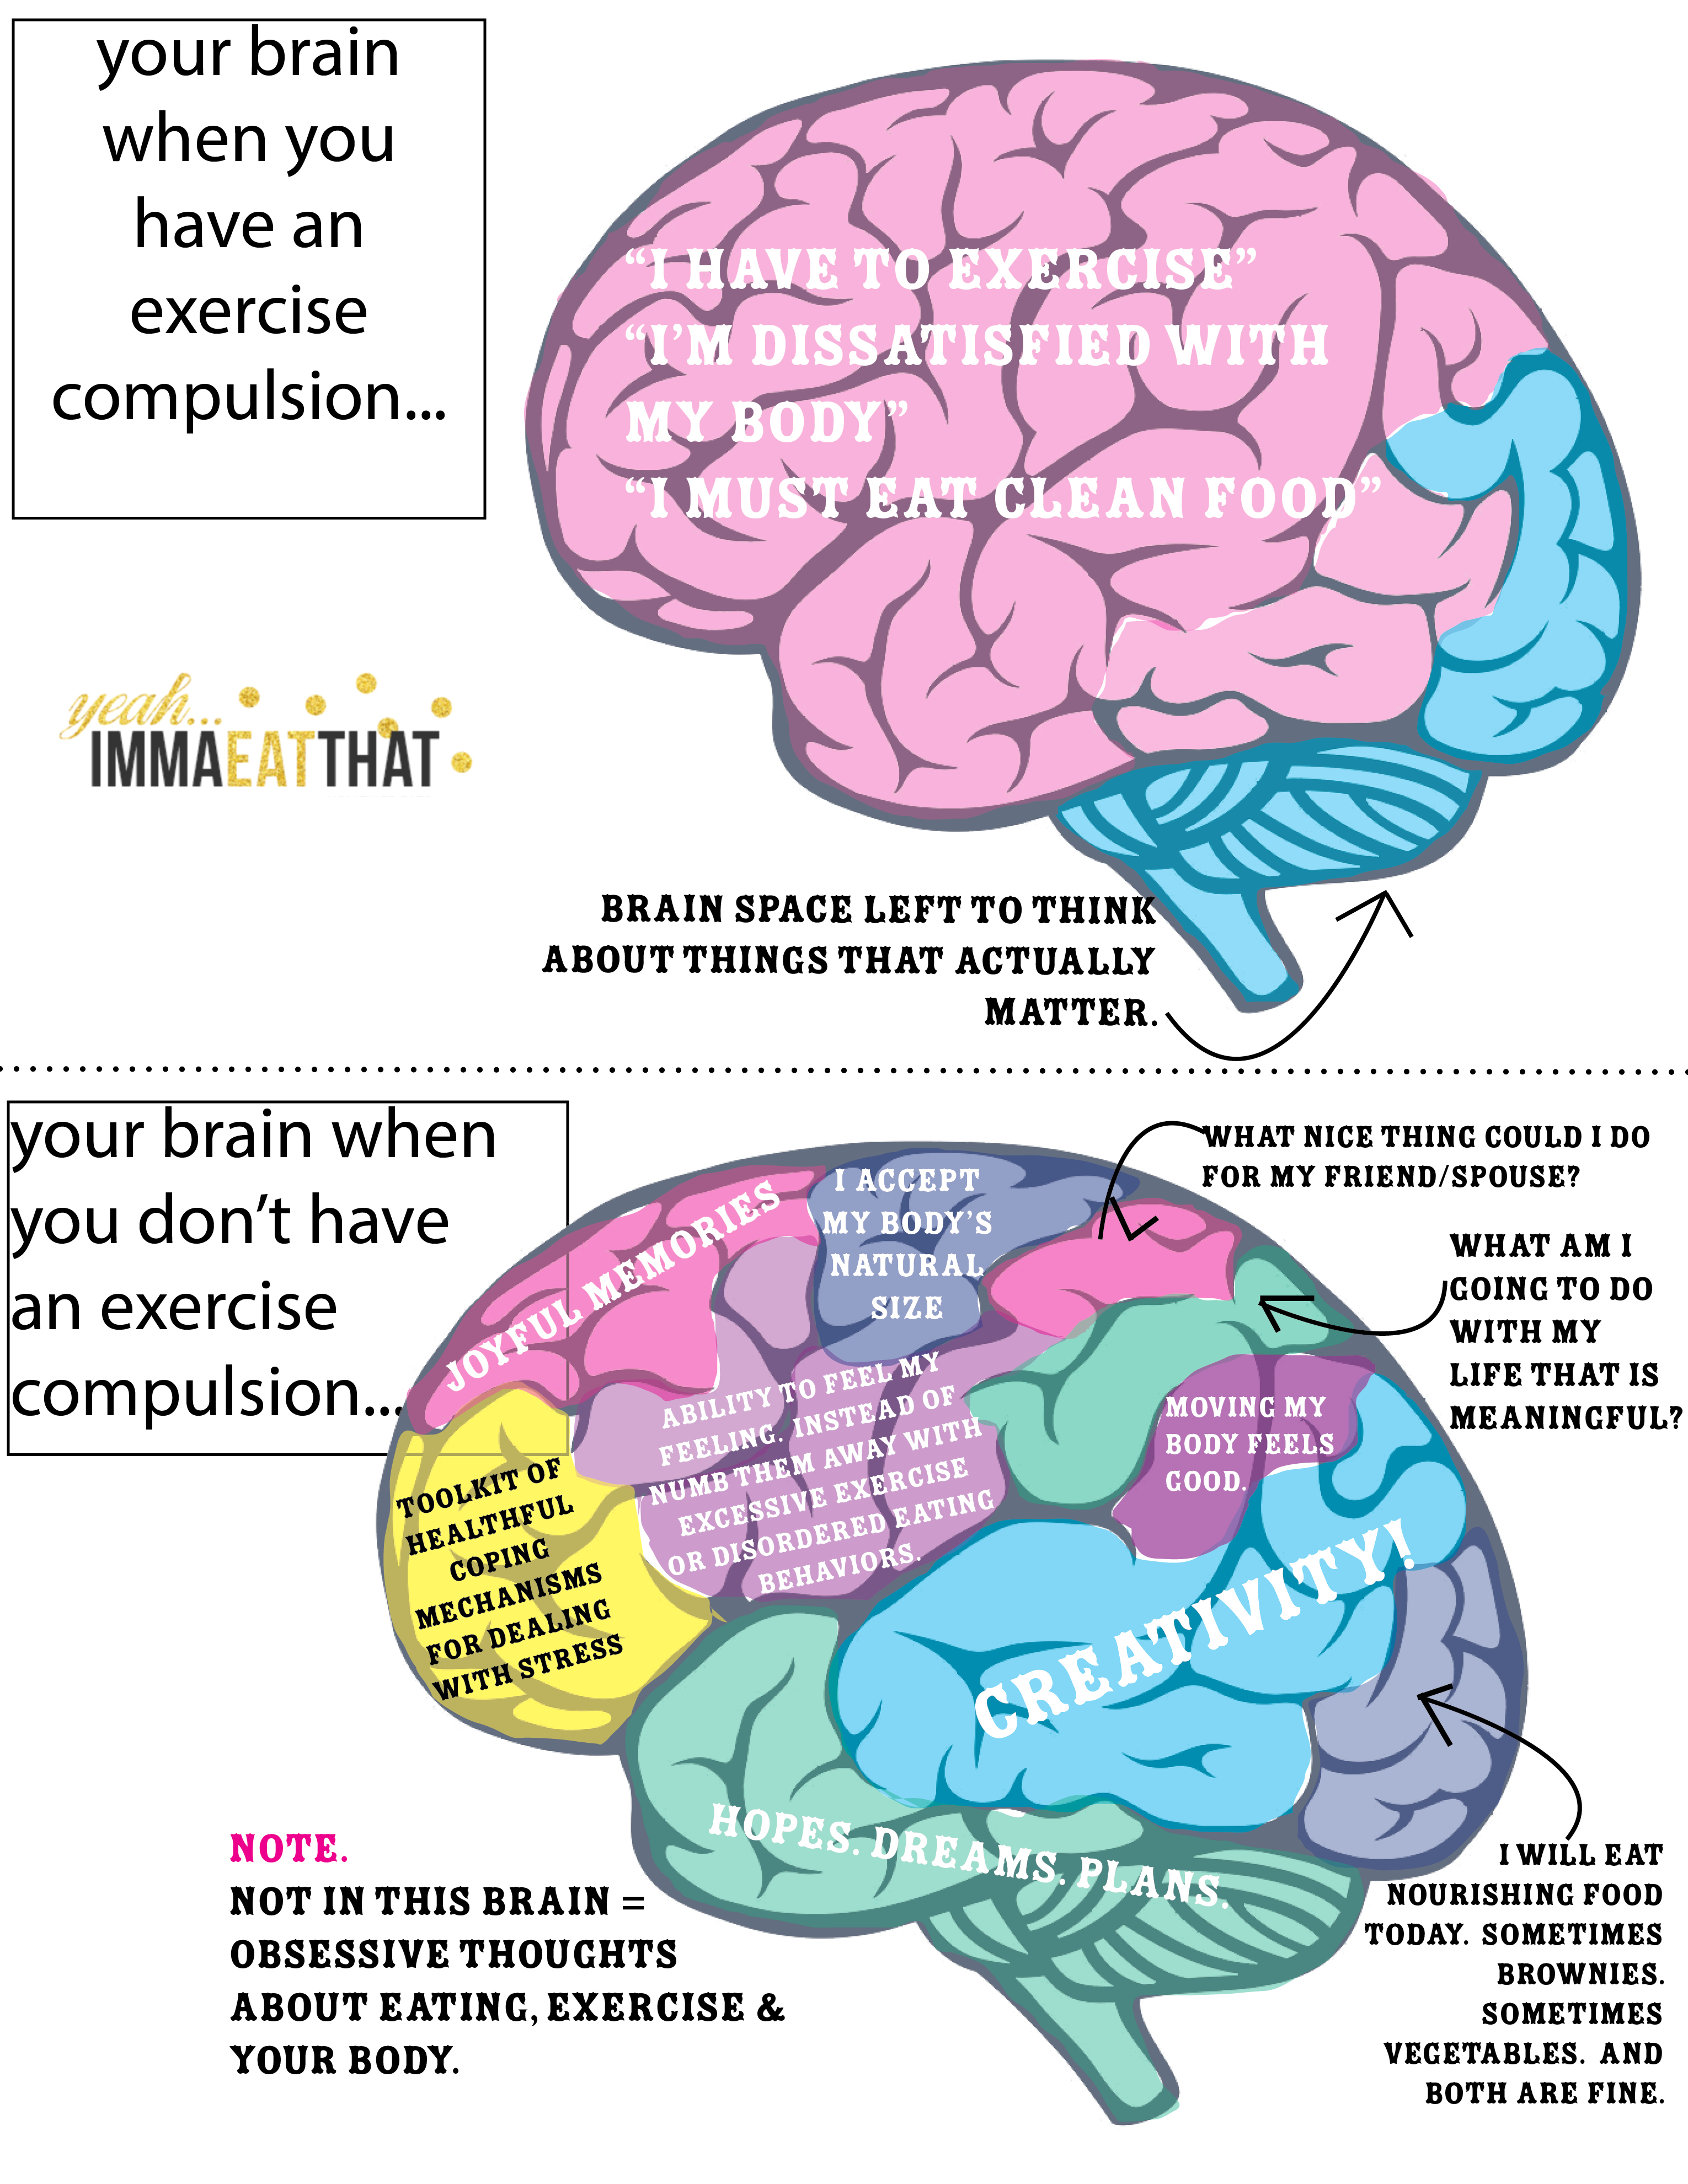 your brain when you have an exercise compulsion vs when you don't | immaEATthat.com